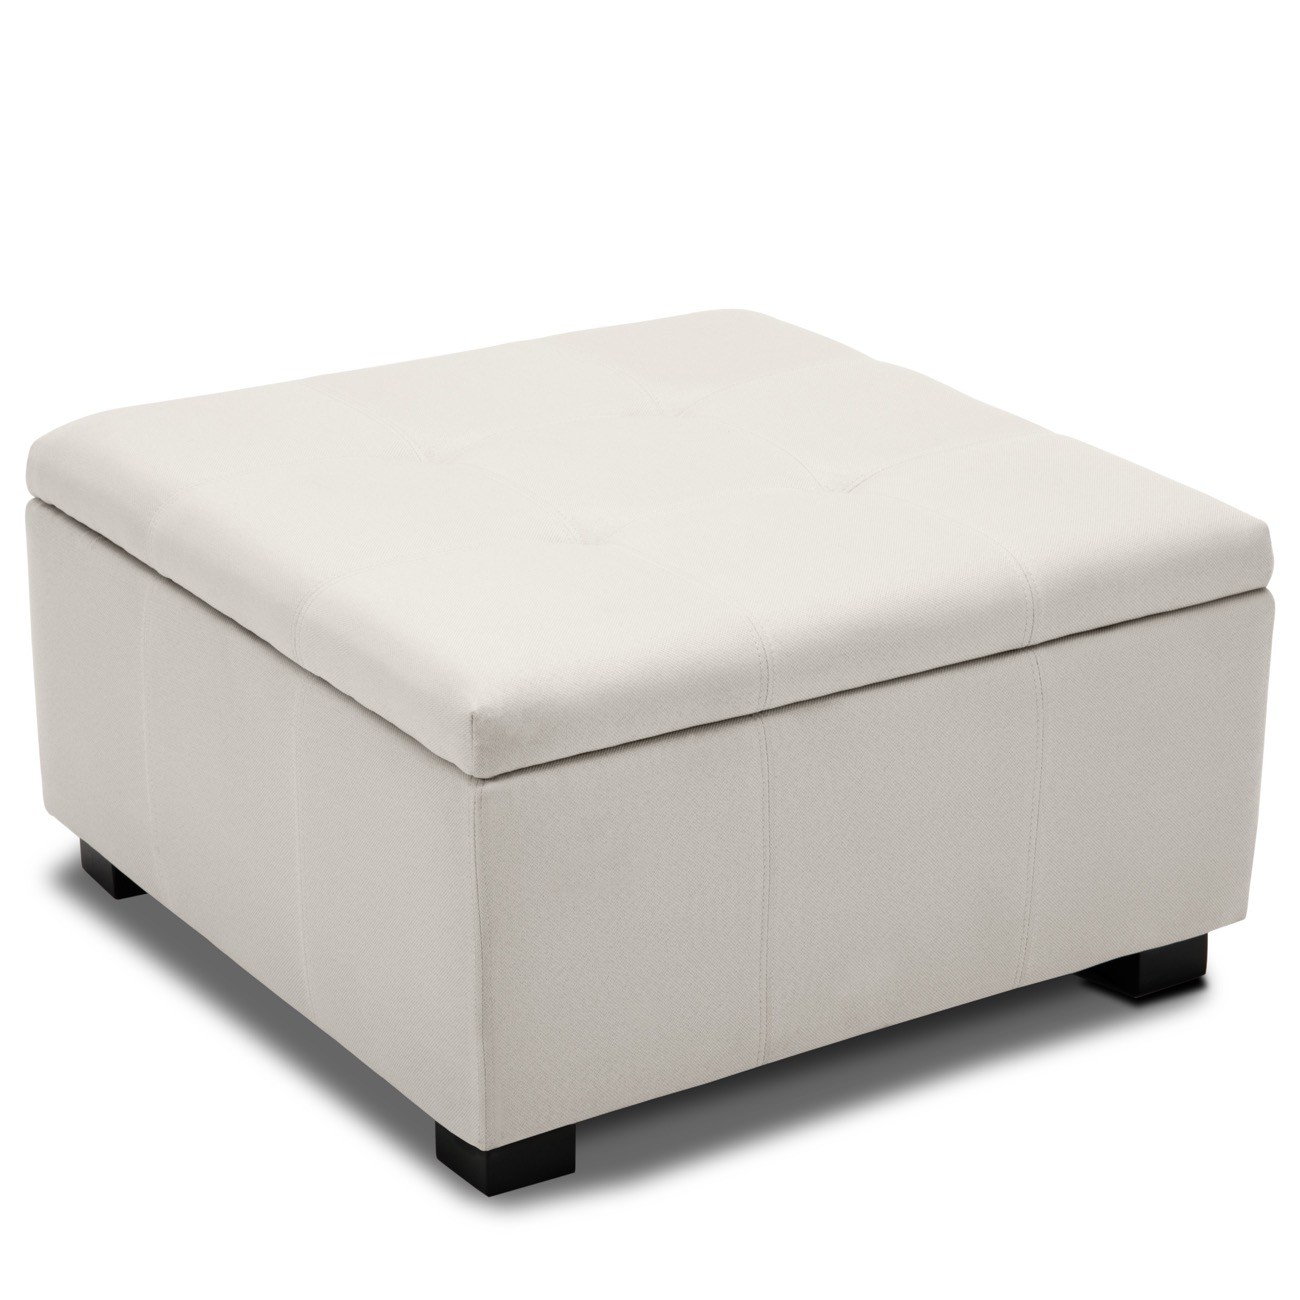 Sensational Details About Storage Ottoman Tufted Upholstered Foot Bench Living Room Bedroom White Andrewgaddart Wooden Chair Designs For Living Room Andrewgaddartcom